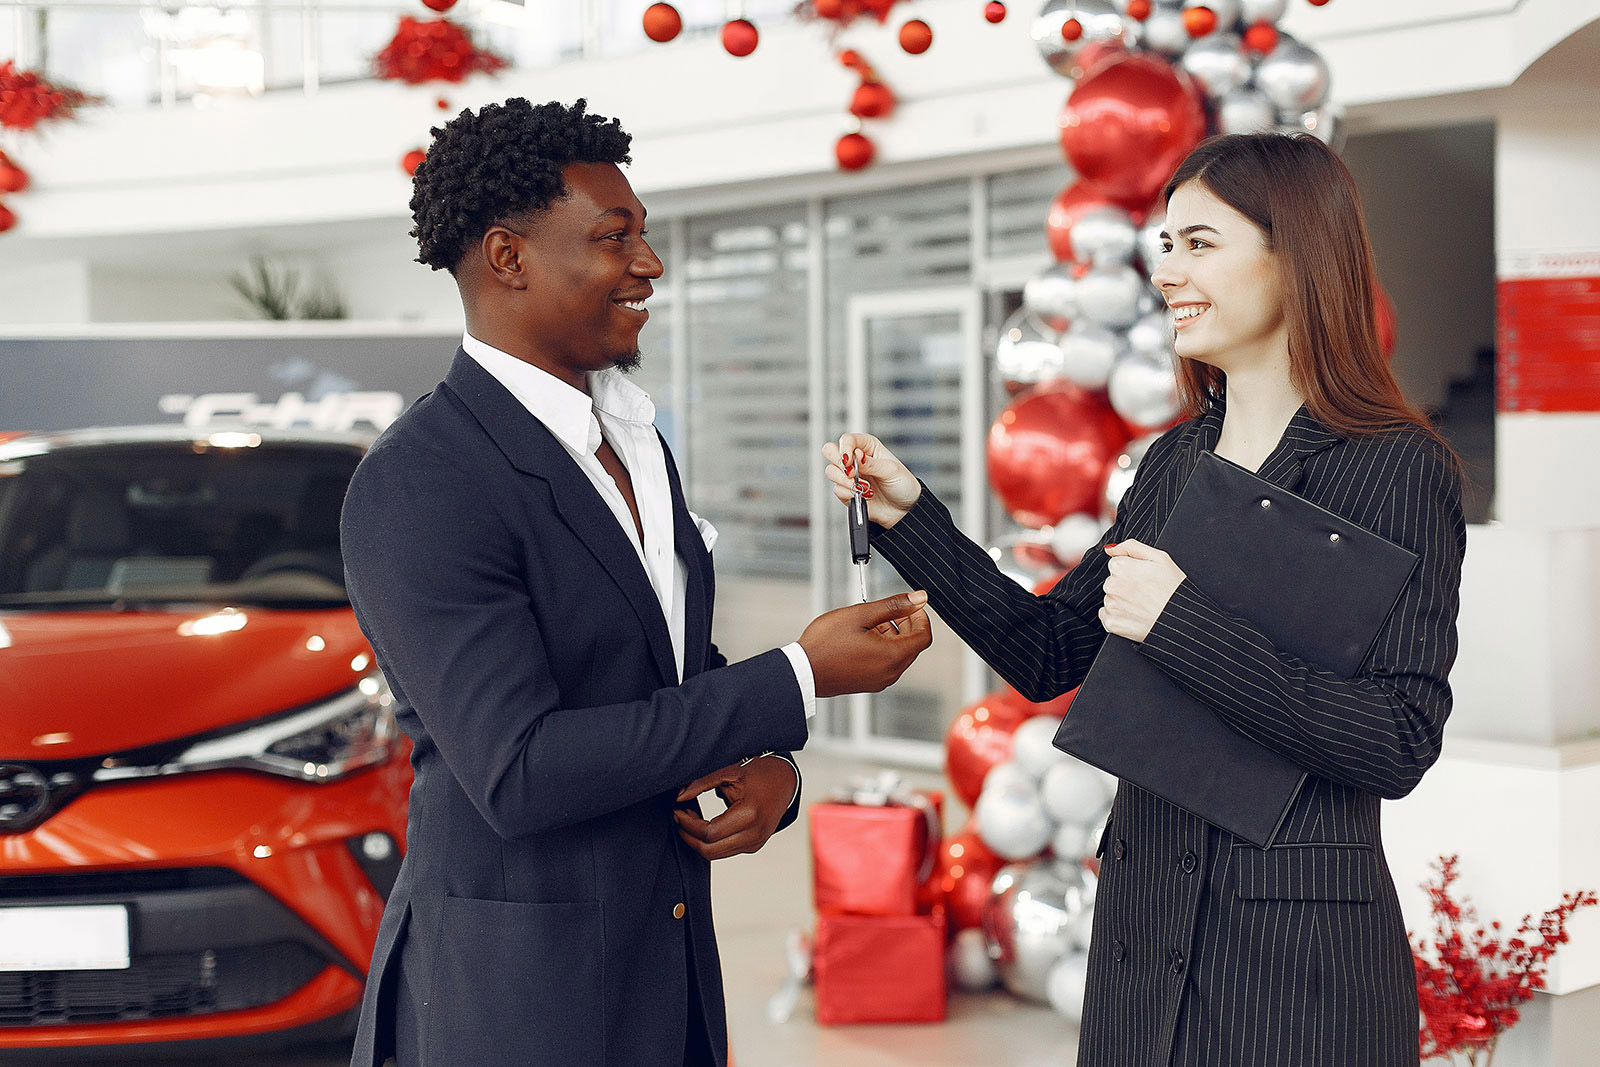 Car saleswoman handing consumer car keys